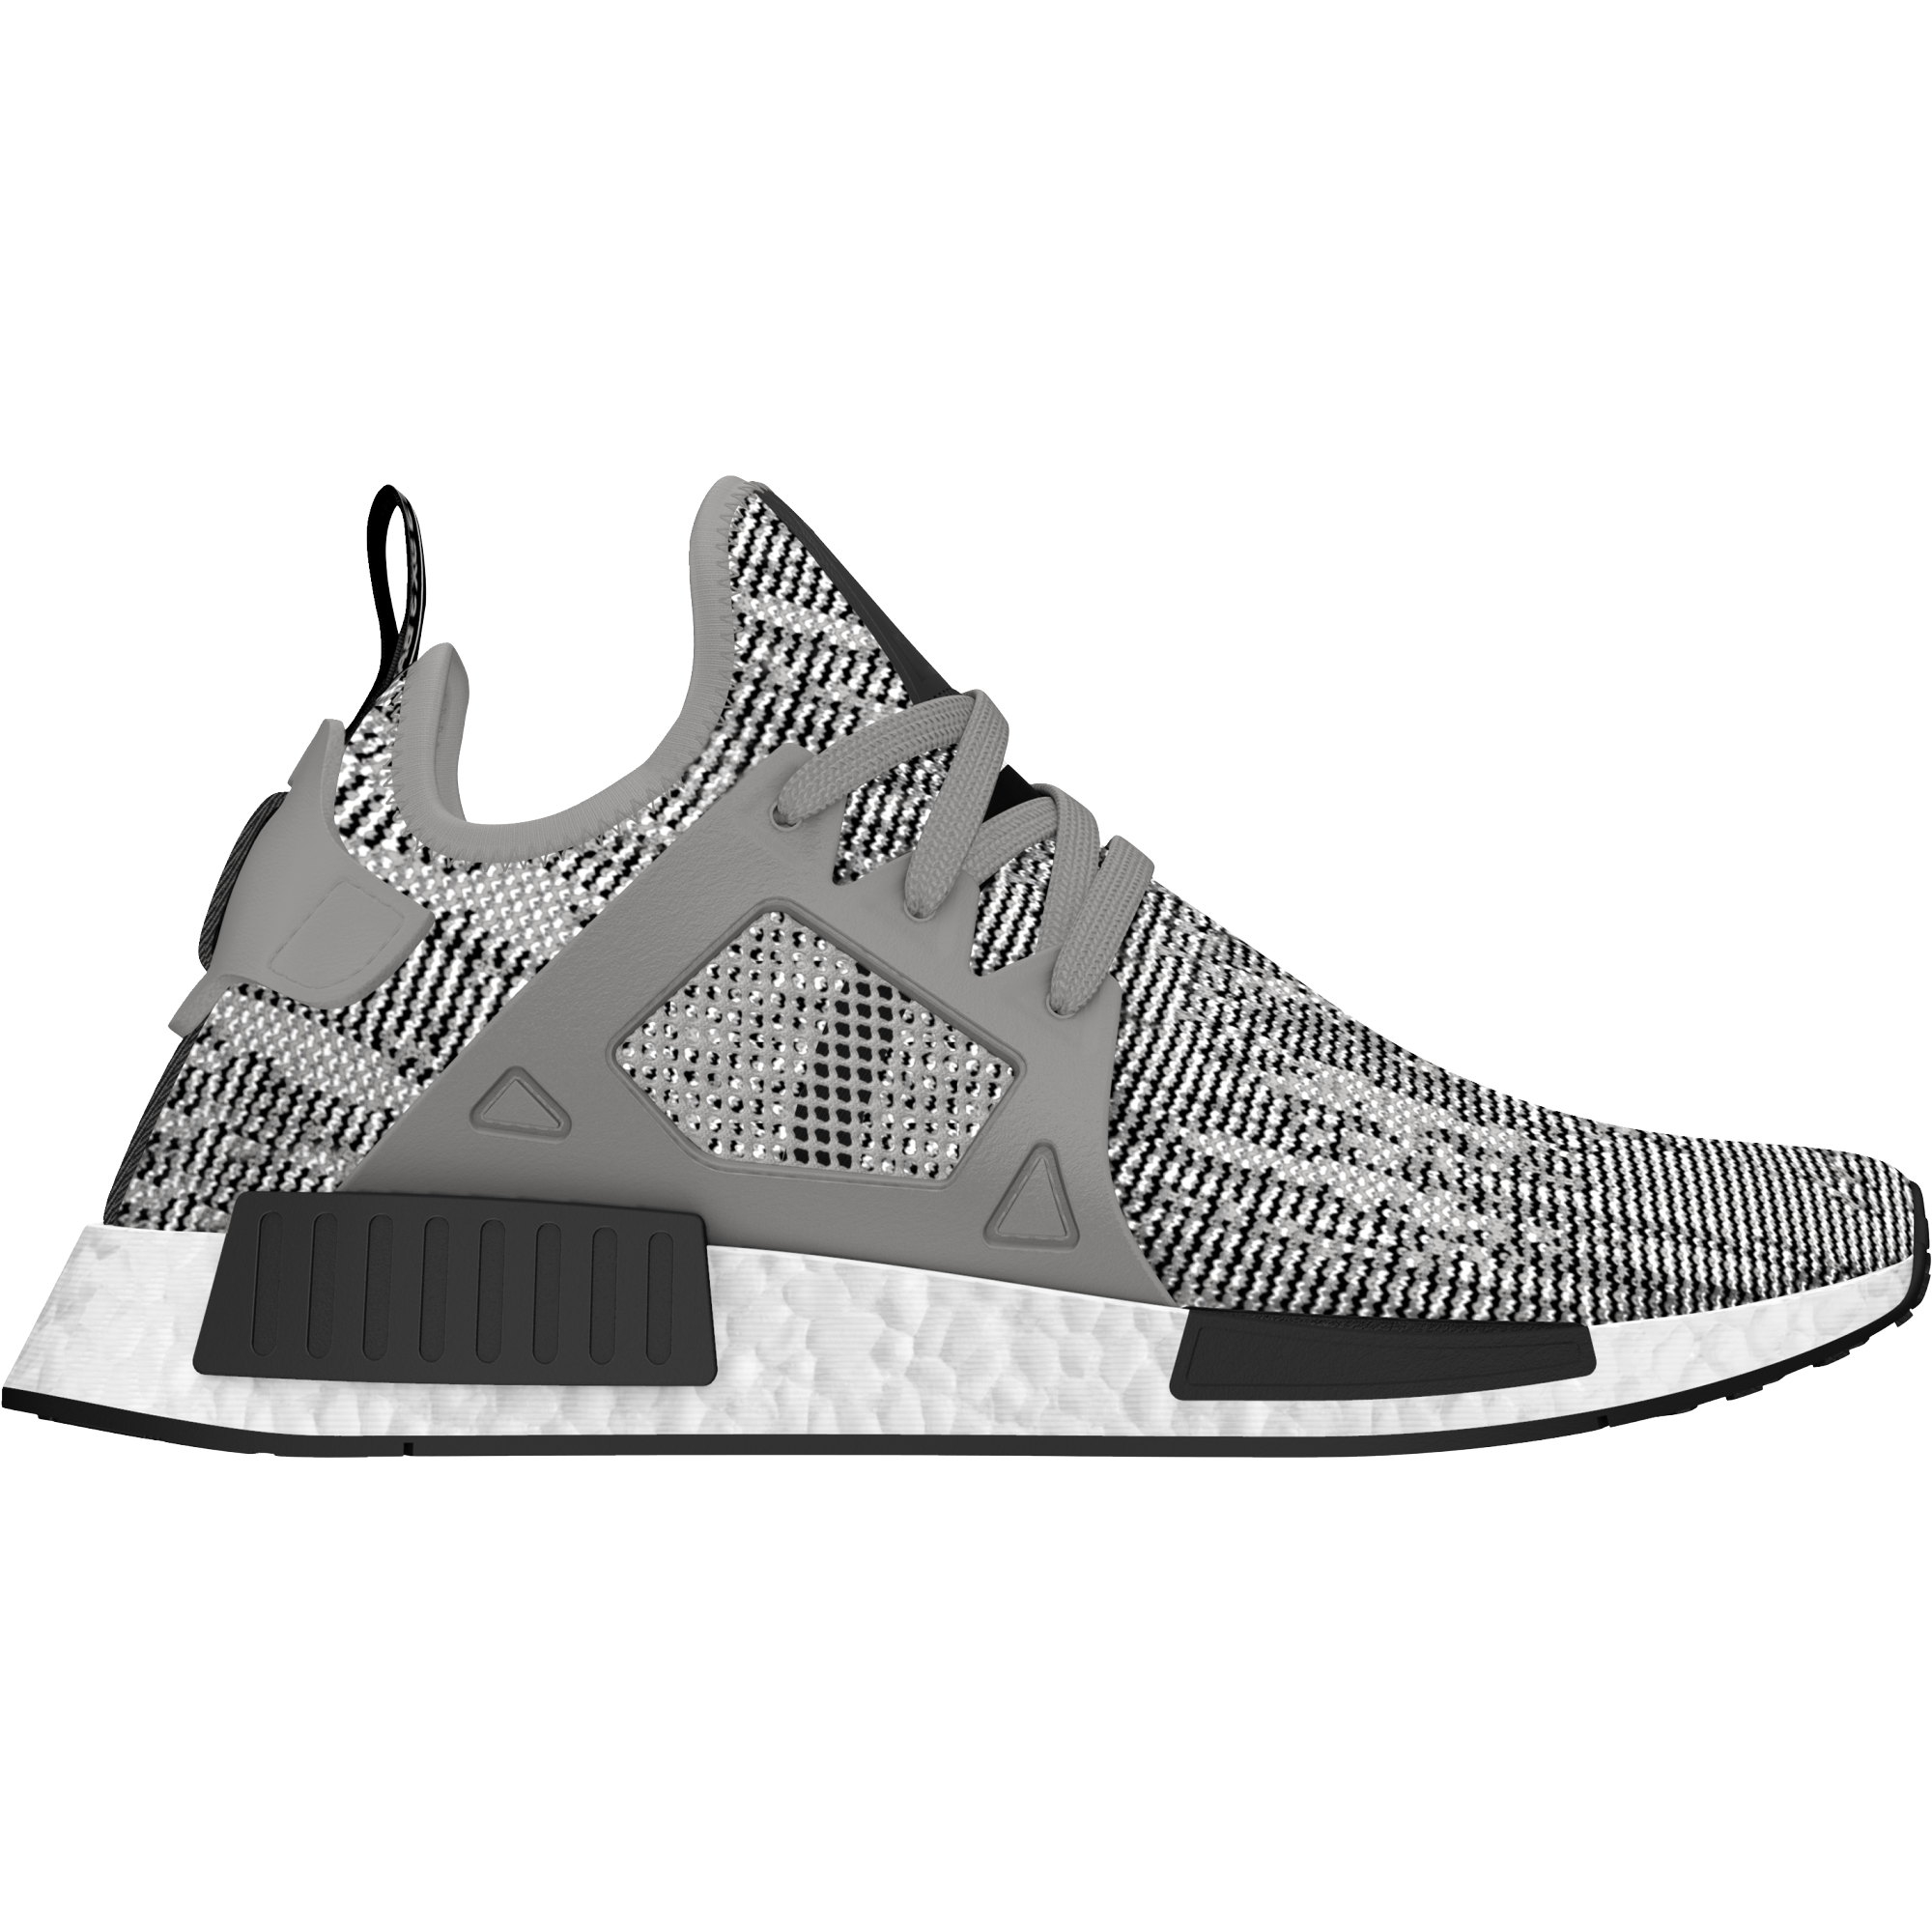 Mens Cheap NMD R1 Primeknit at Life Style Sports